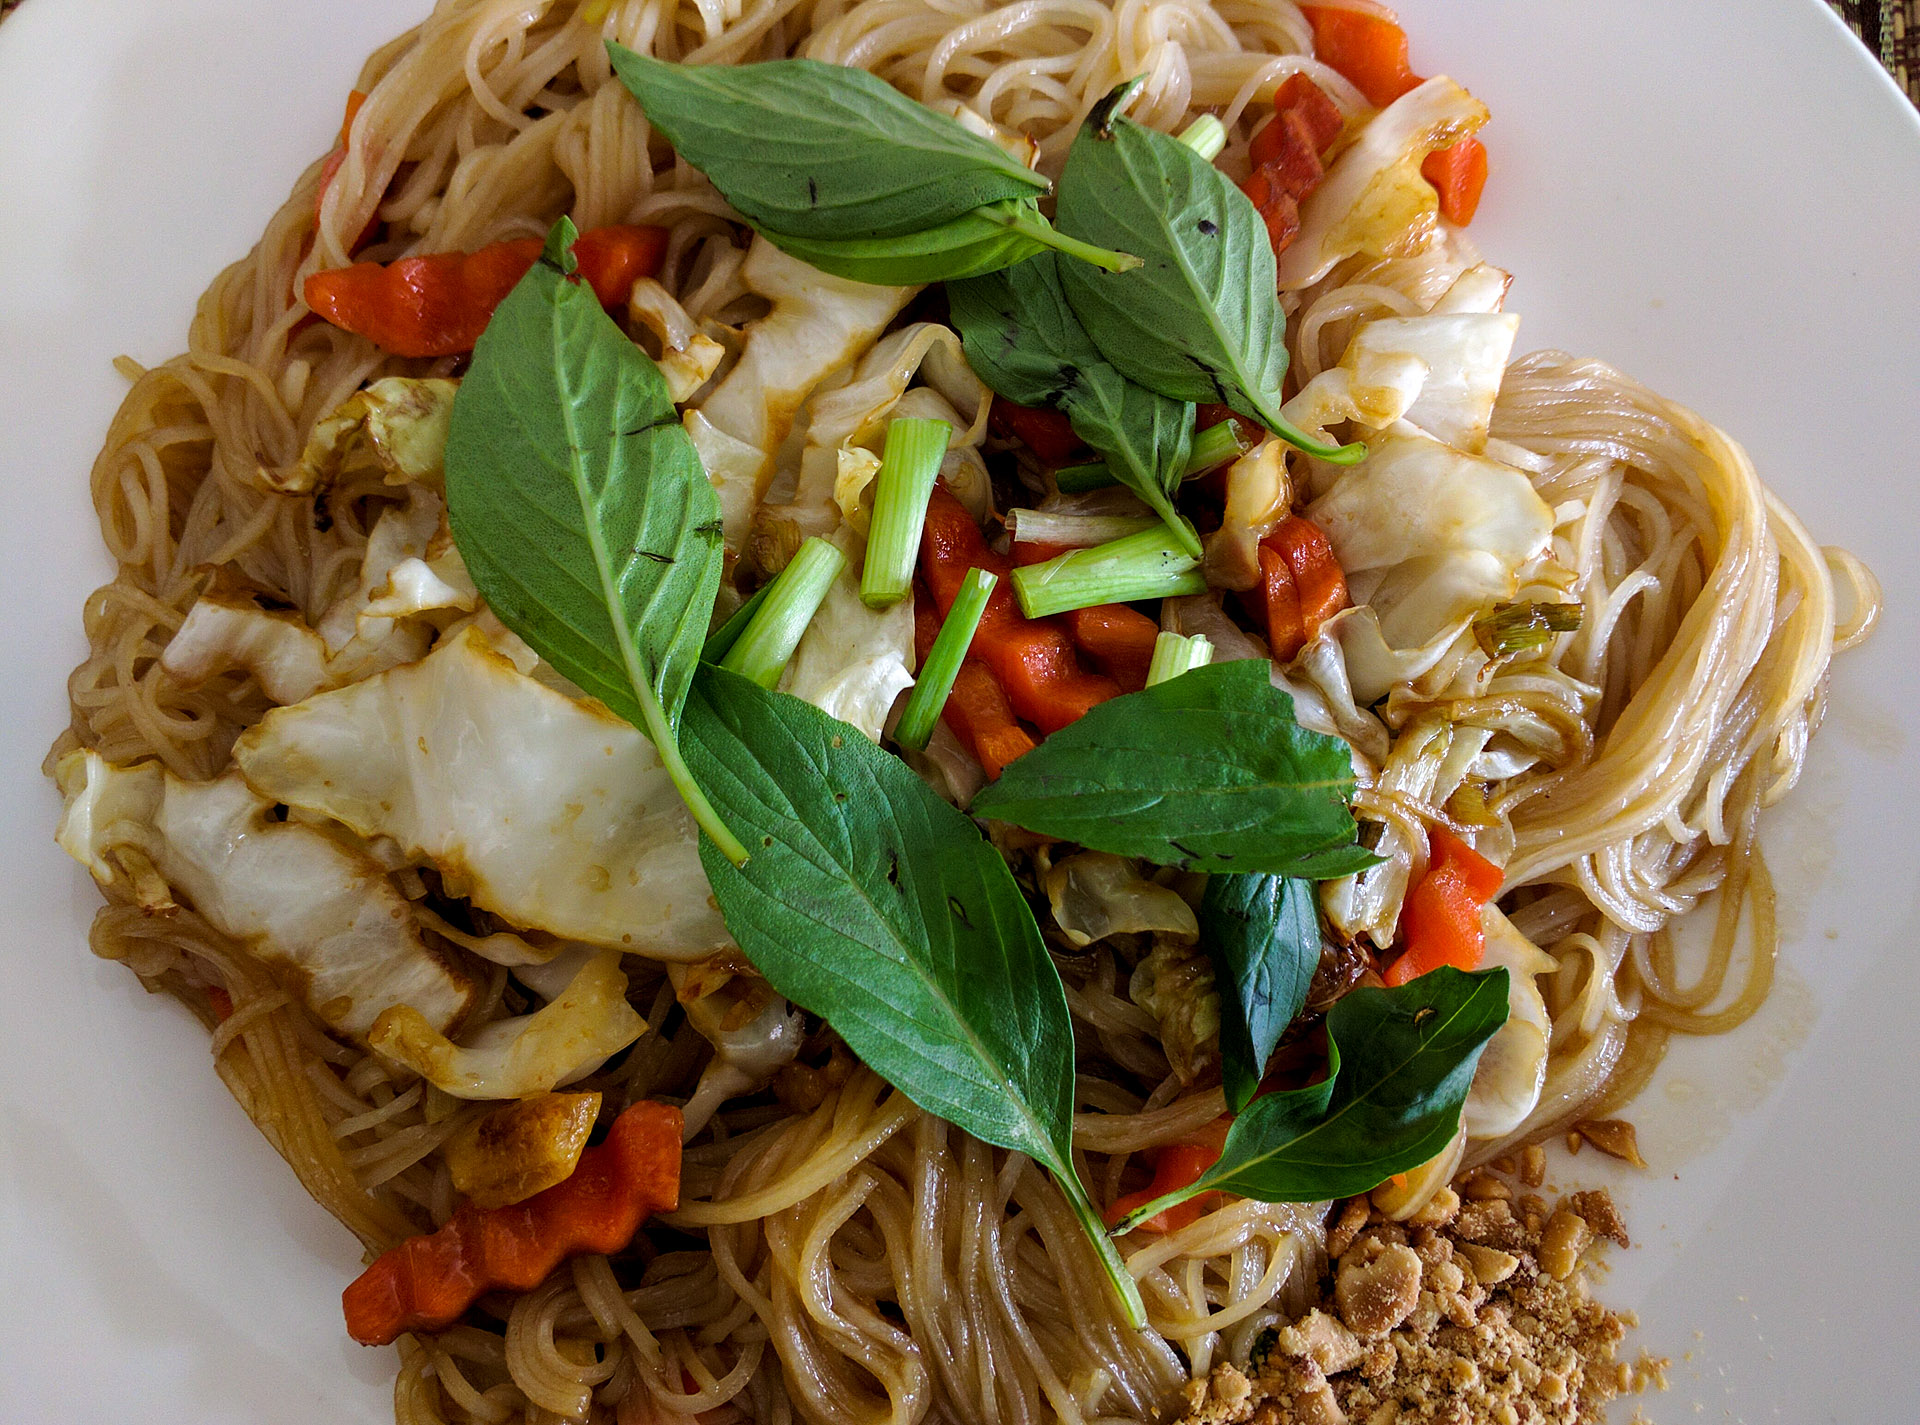 Rice noodles with Siem Reap basil